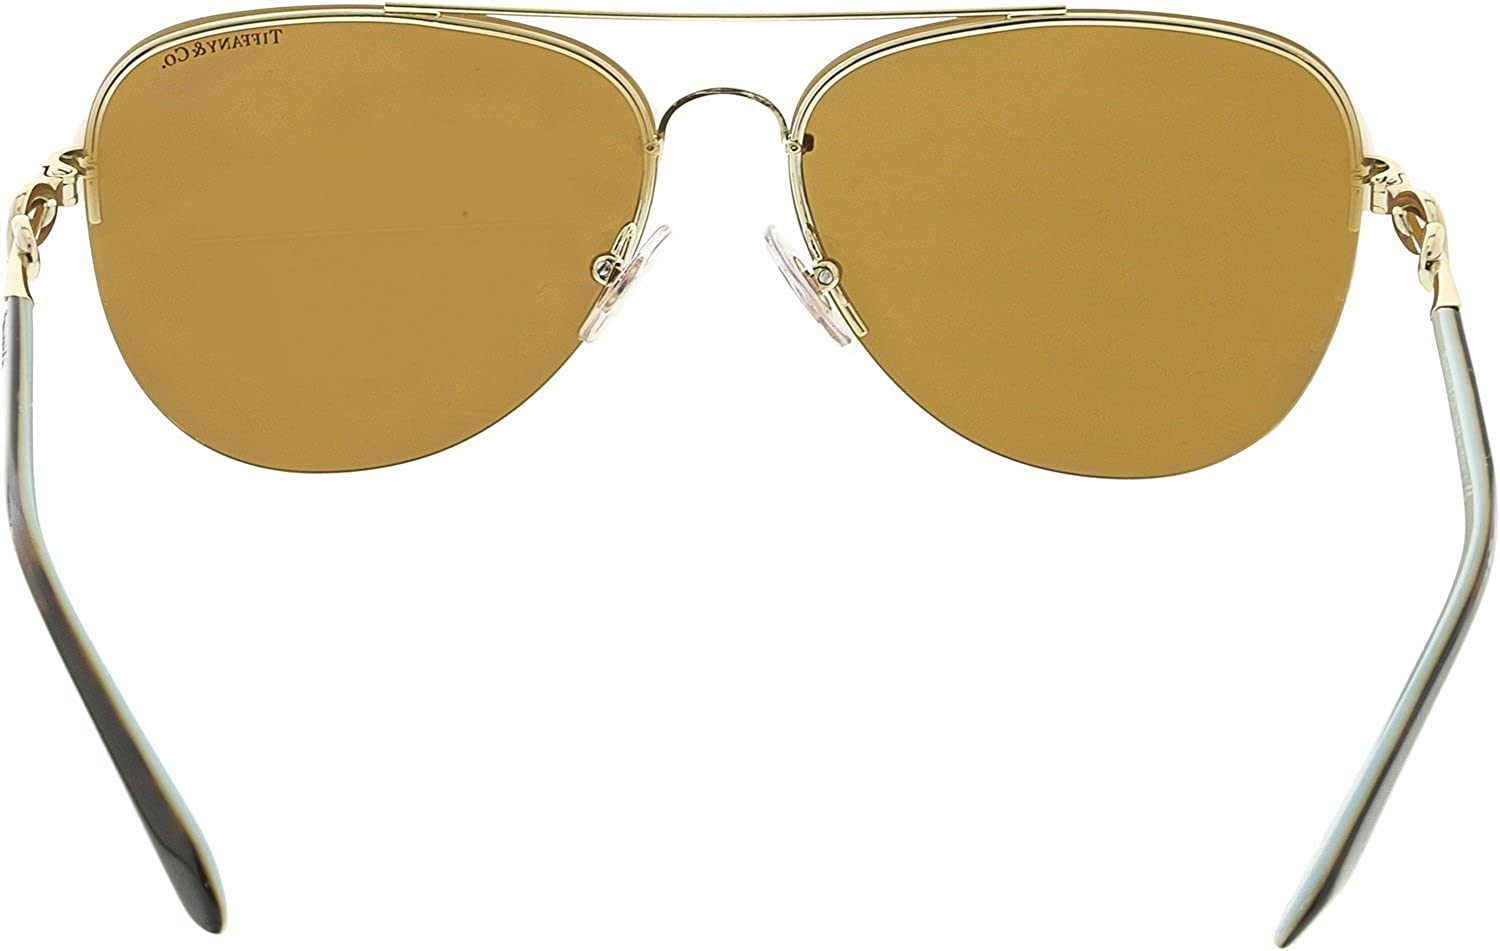 e34df45a7d89 Amazon.com  Tiffany   Co TF3054B 602164 Sunglasses PALE GOLD w  BROWN  MIRROR WHITE Lens 59mm  Tiffany And Co.  Clothing